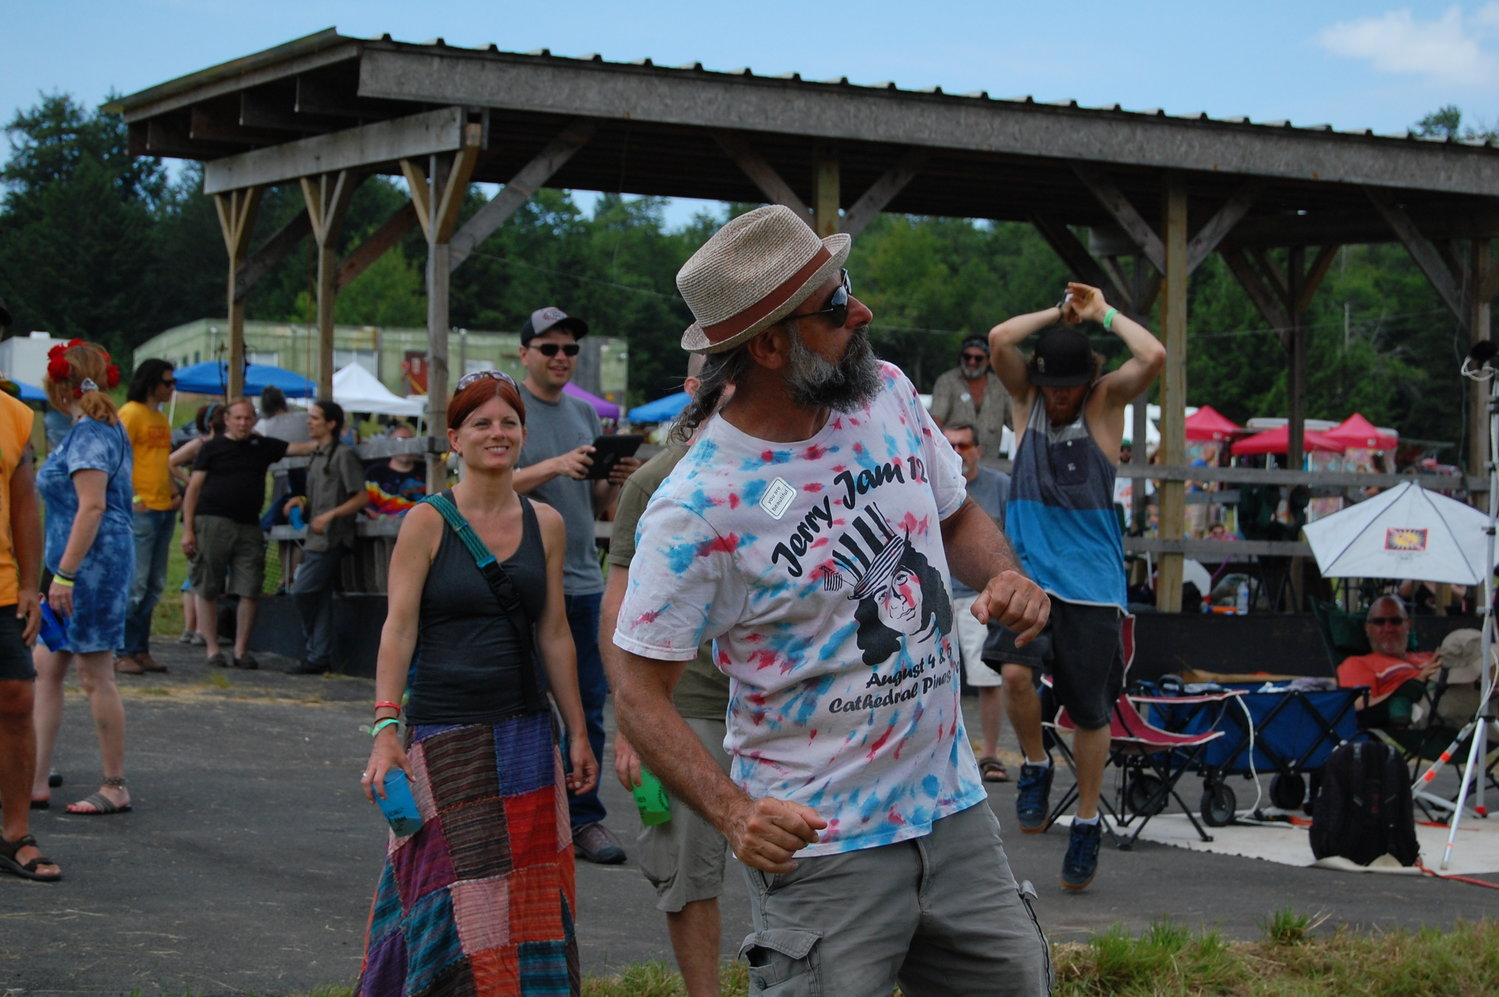 People flocked to Arrowhead Ranch in Parksville, NY this Fourth of July weekend to celebrate the Grateful Dead. The field was filled with grooving and grinning faces.